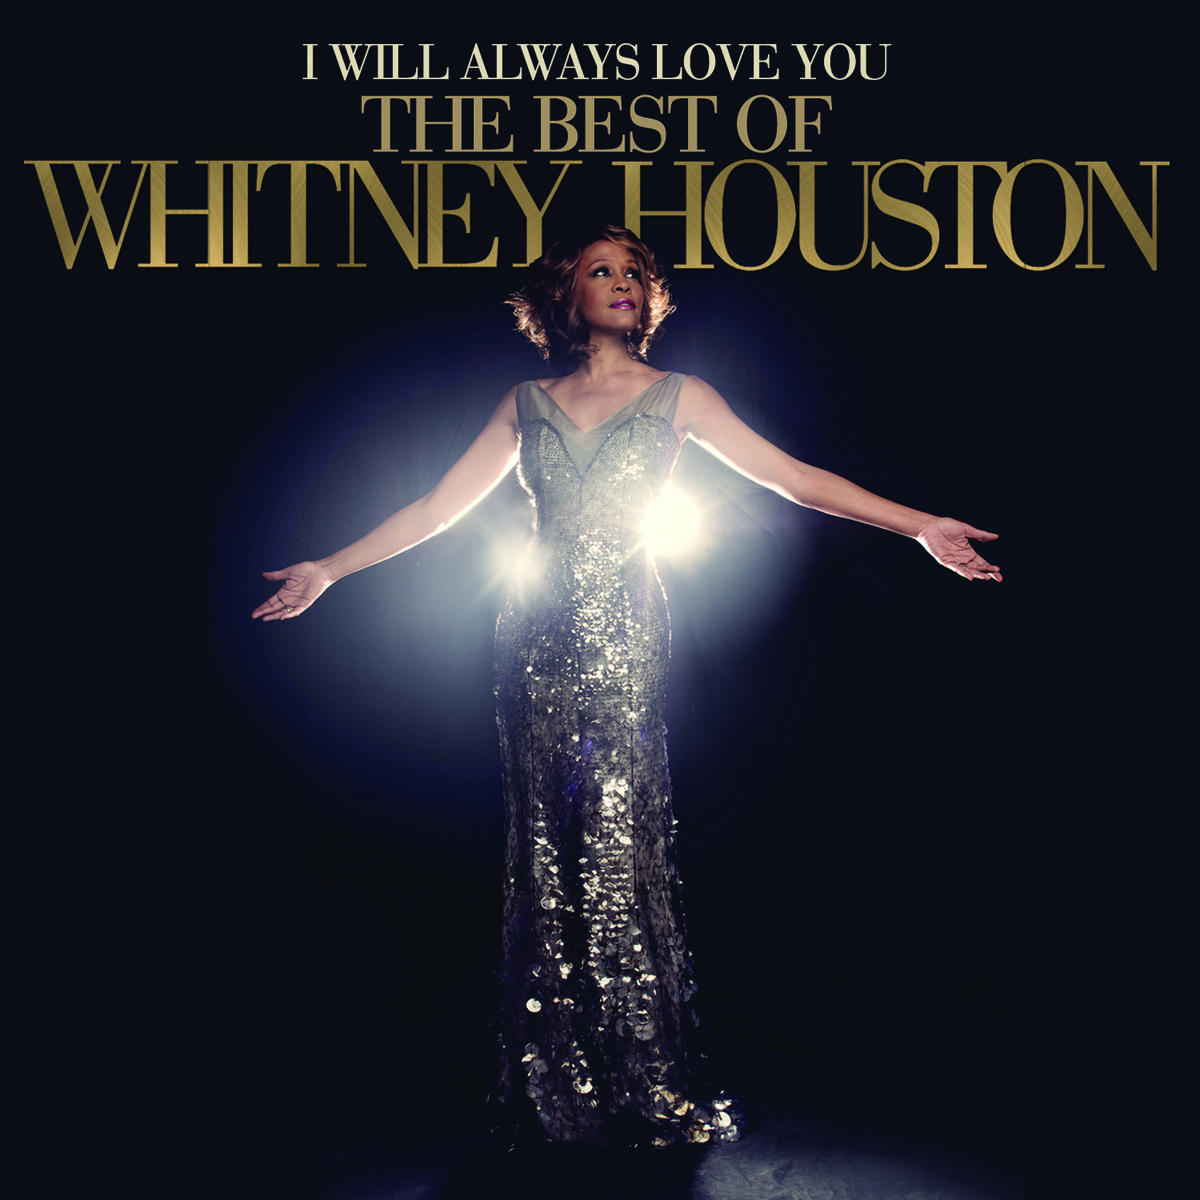 Whitney Houston - I Will Always Love You: The Best Of Whitney Houston